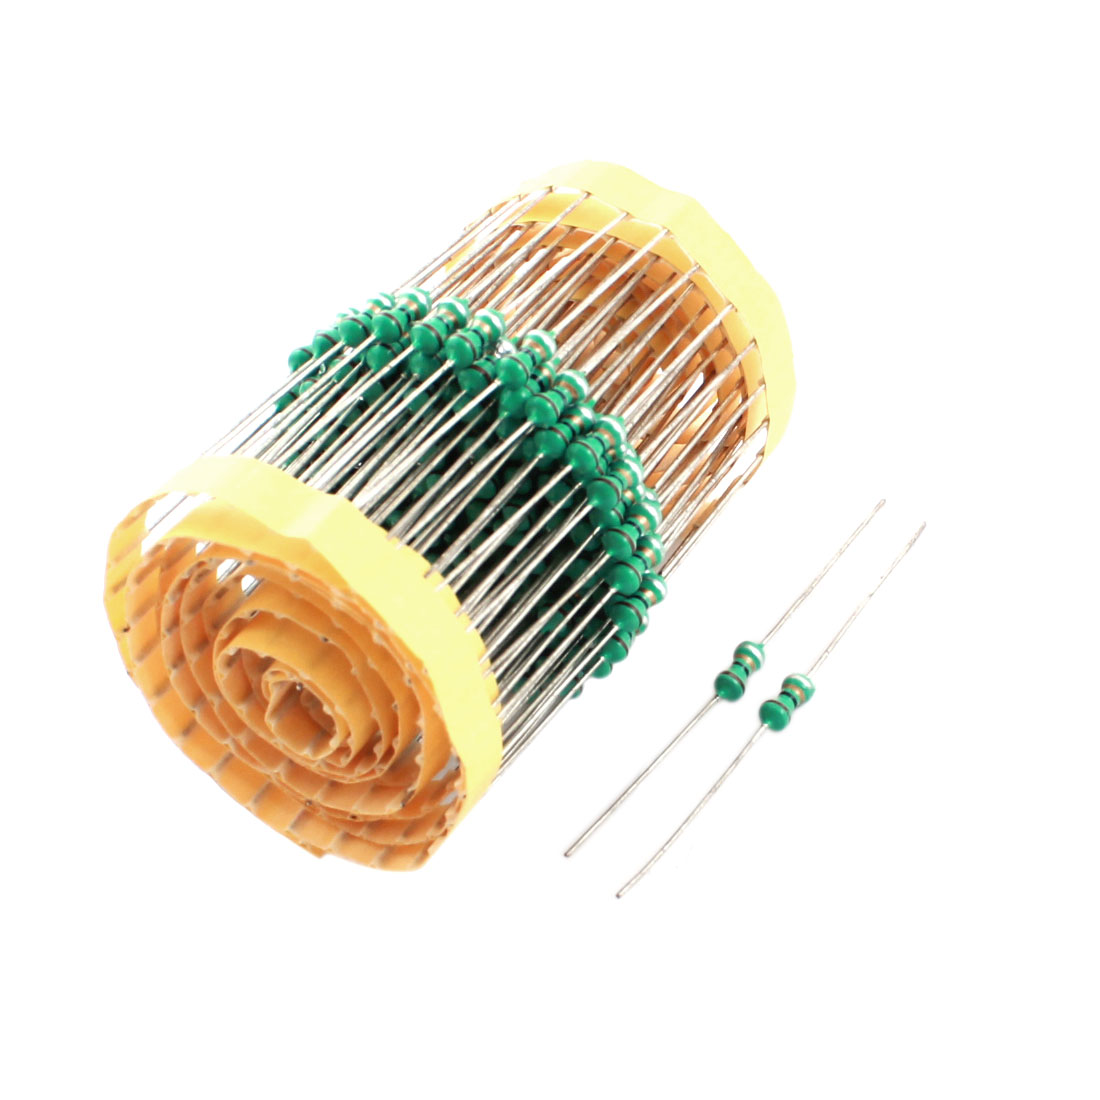 200Pcs Electronic Component 1/2W 1uH 10% Color Ring Inductors 4x10mm